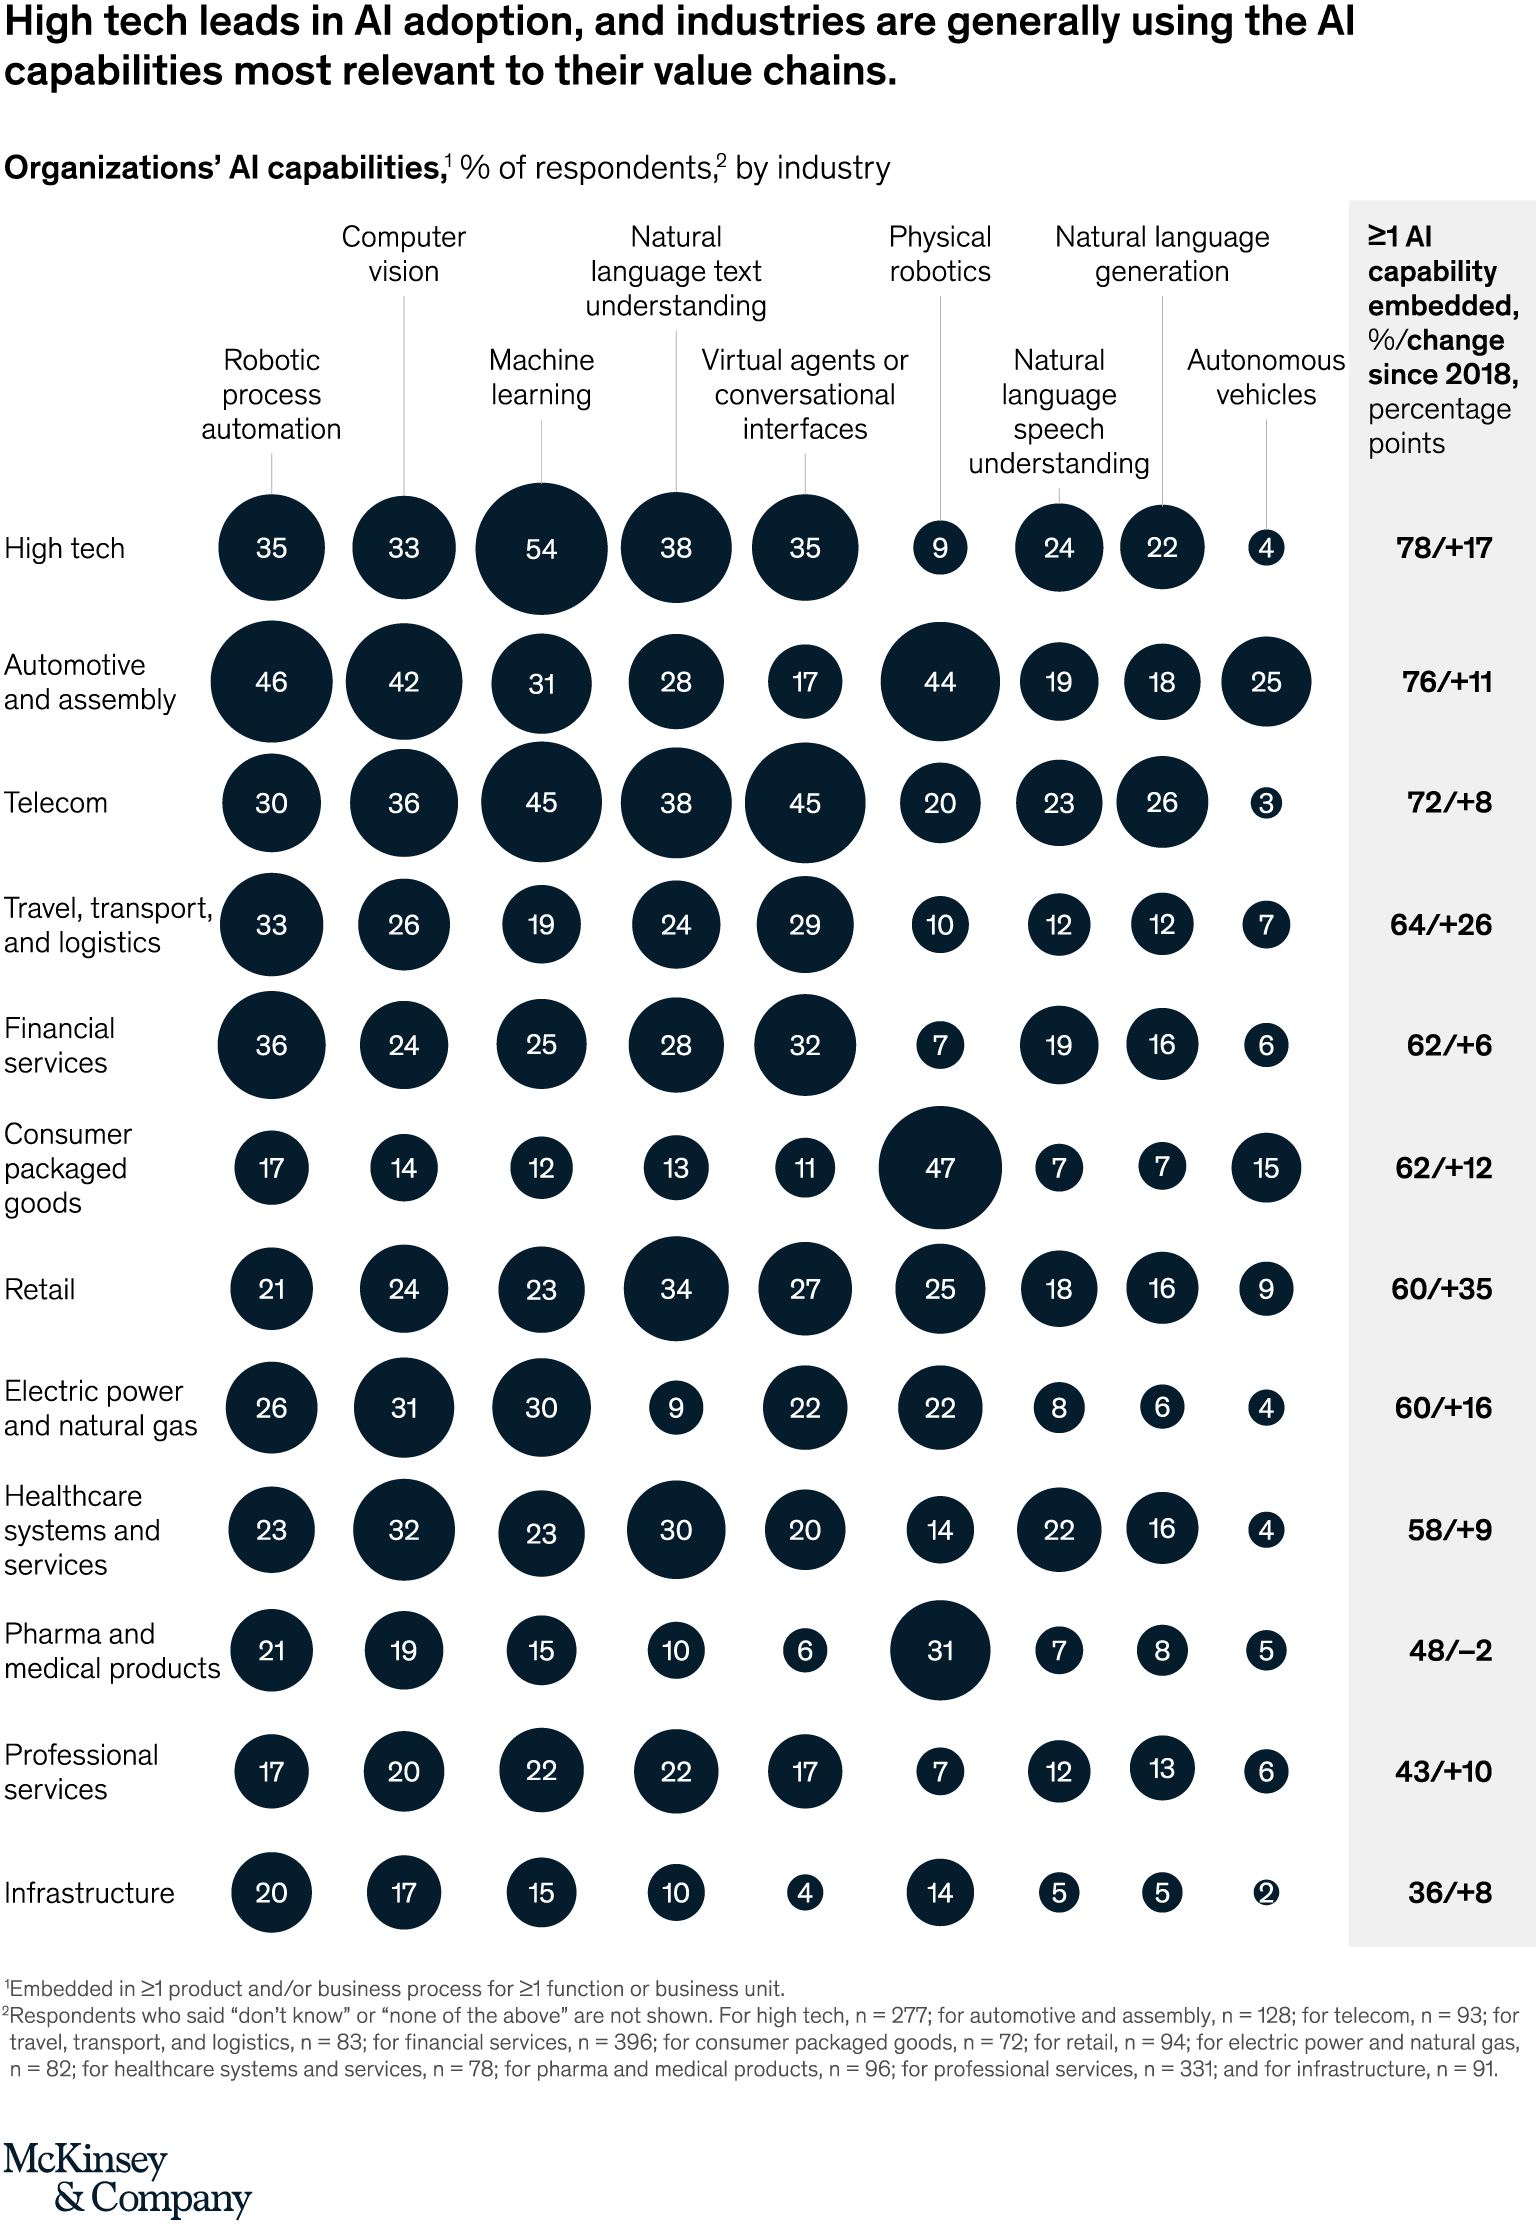 Organizations' AI capabilities, % of respondents, by industry, McKinsey's Global AI Survey, November 2019